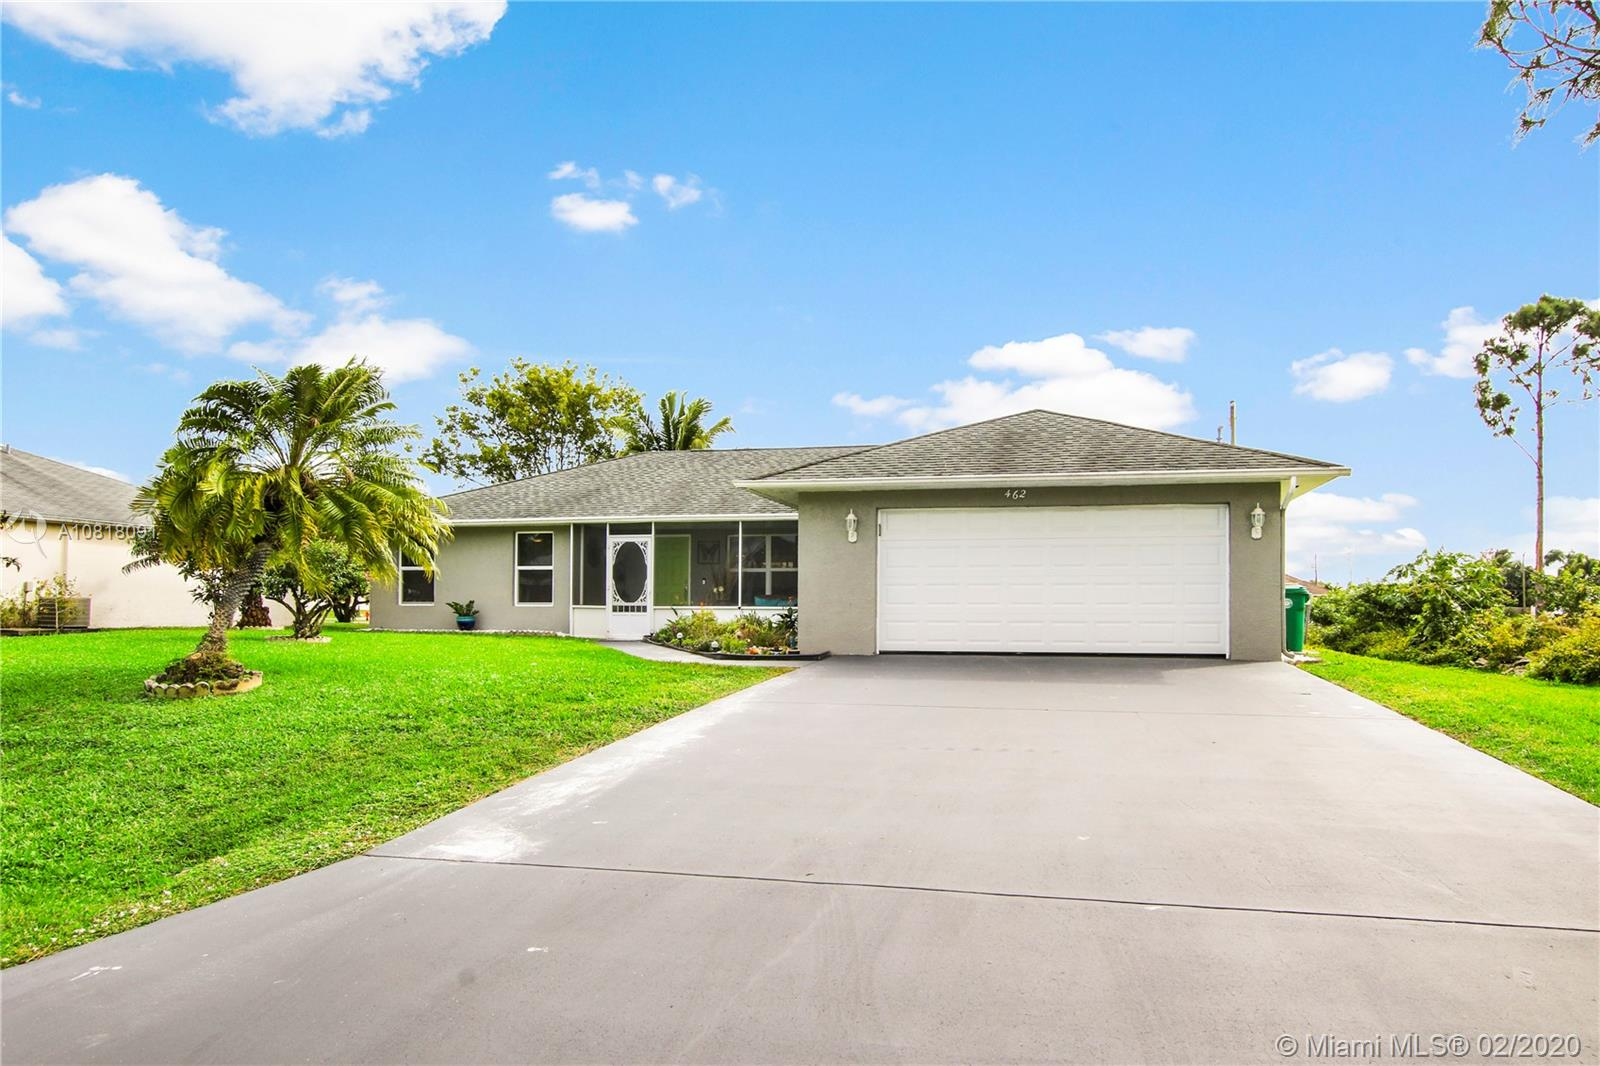 462 SW Nativity Ter, Port St. Lucie, FL 34984